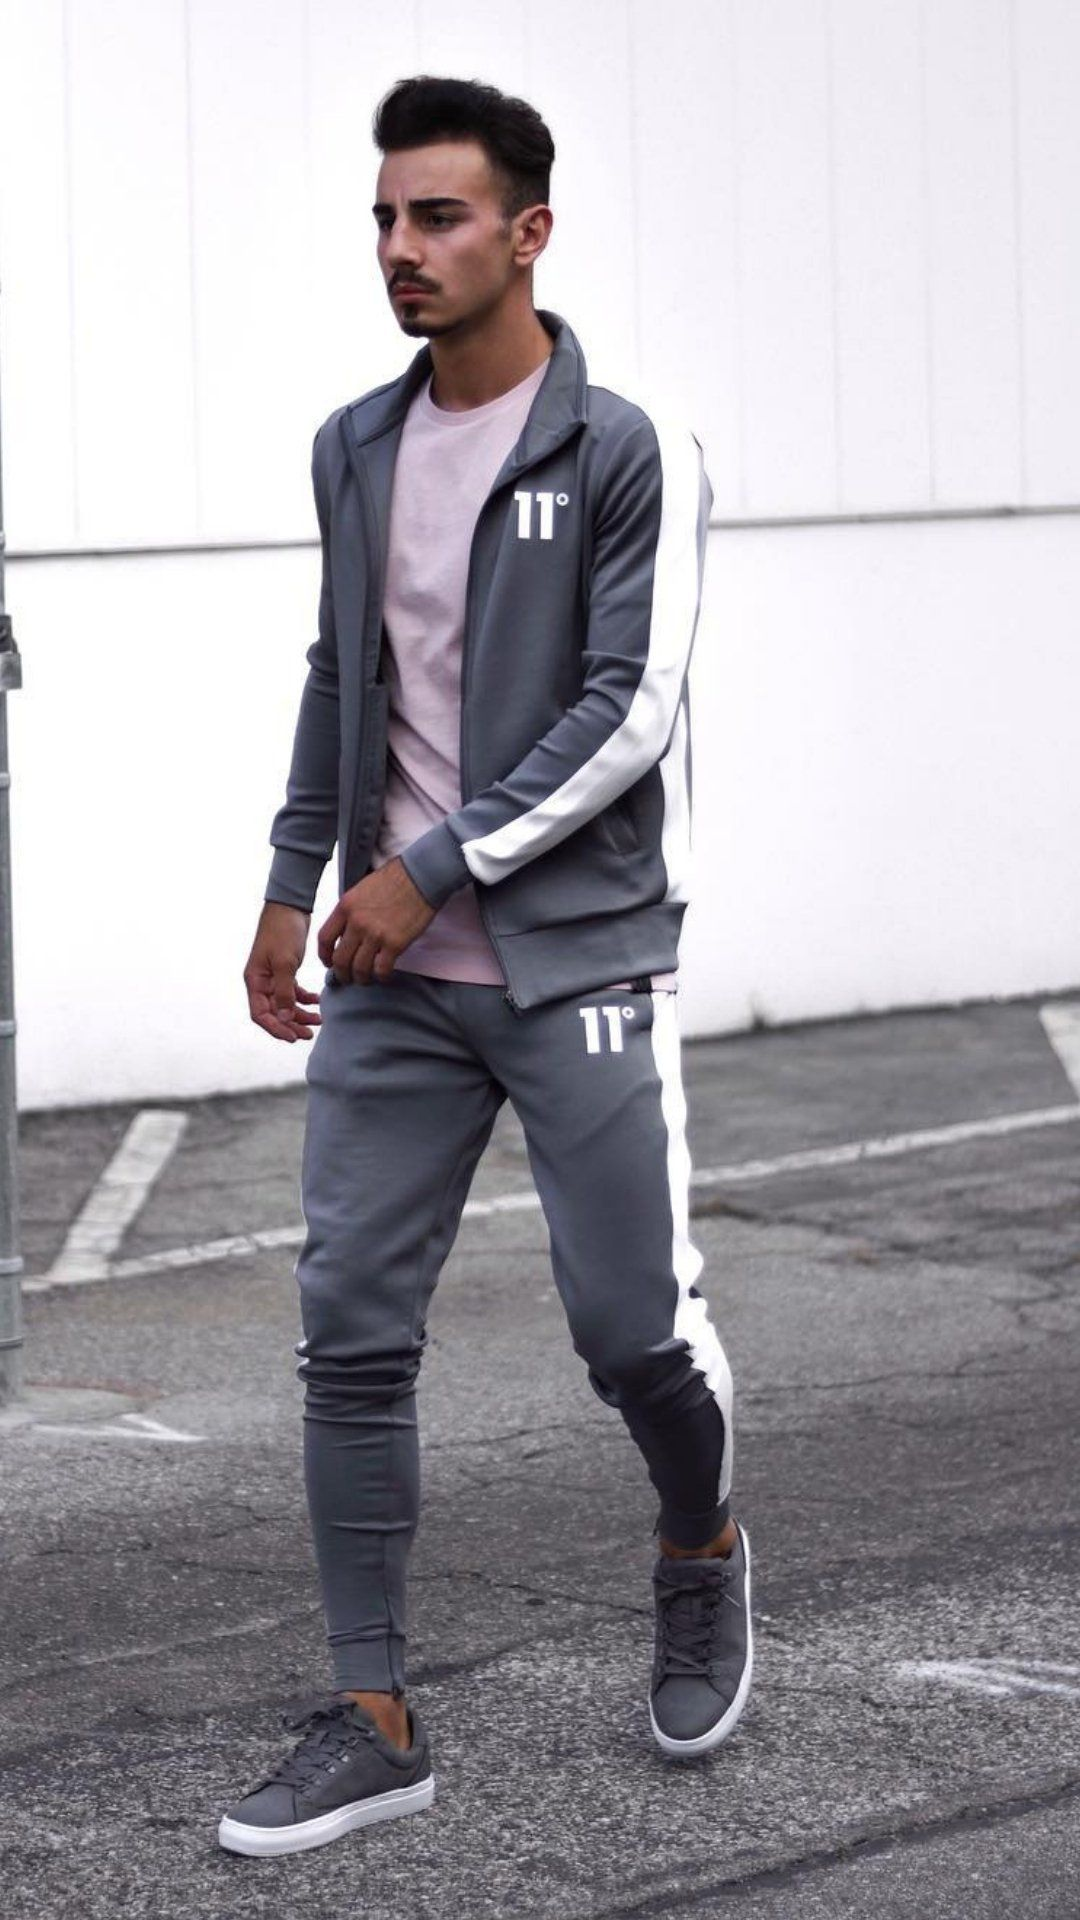 20 Joggers Outfits For Men   Mens joggers outfit, Joggers outfit ...